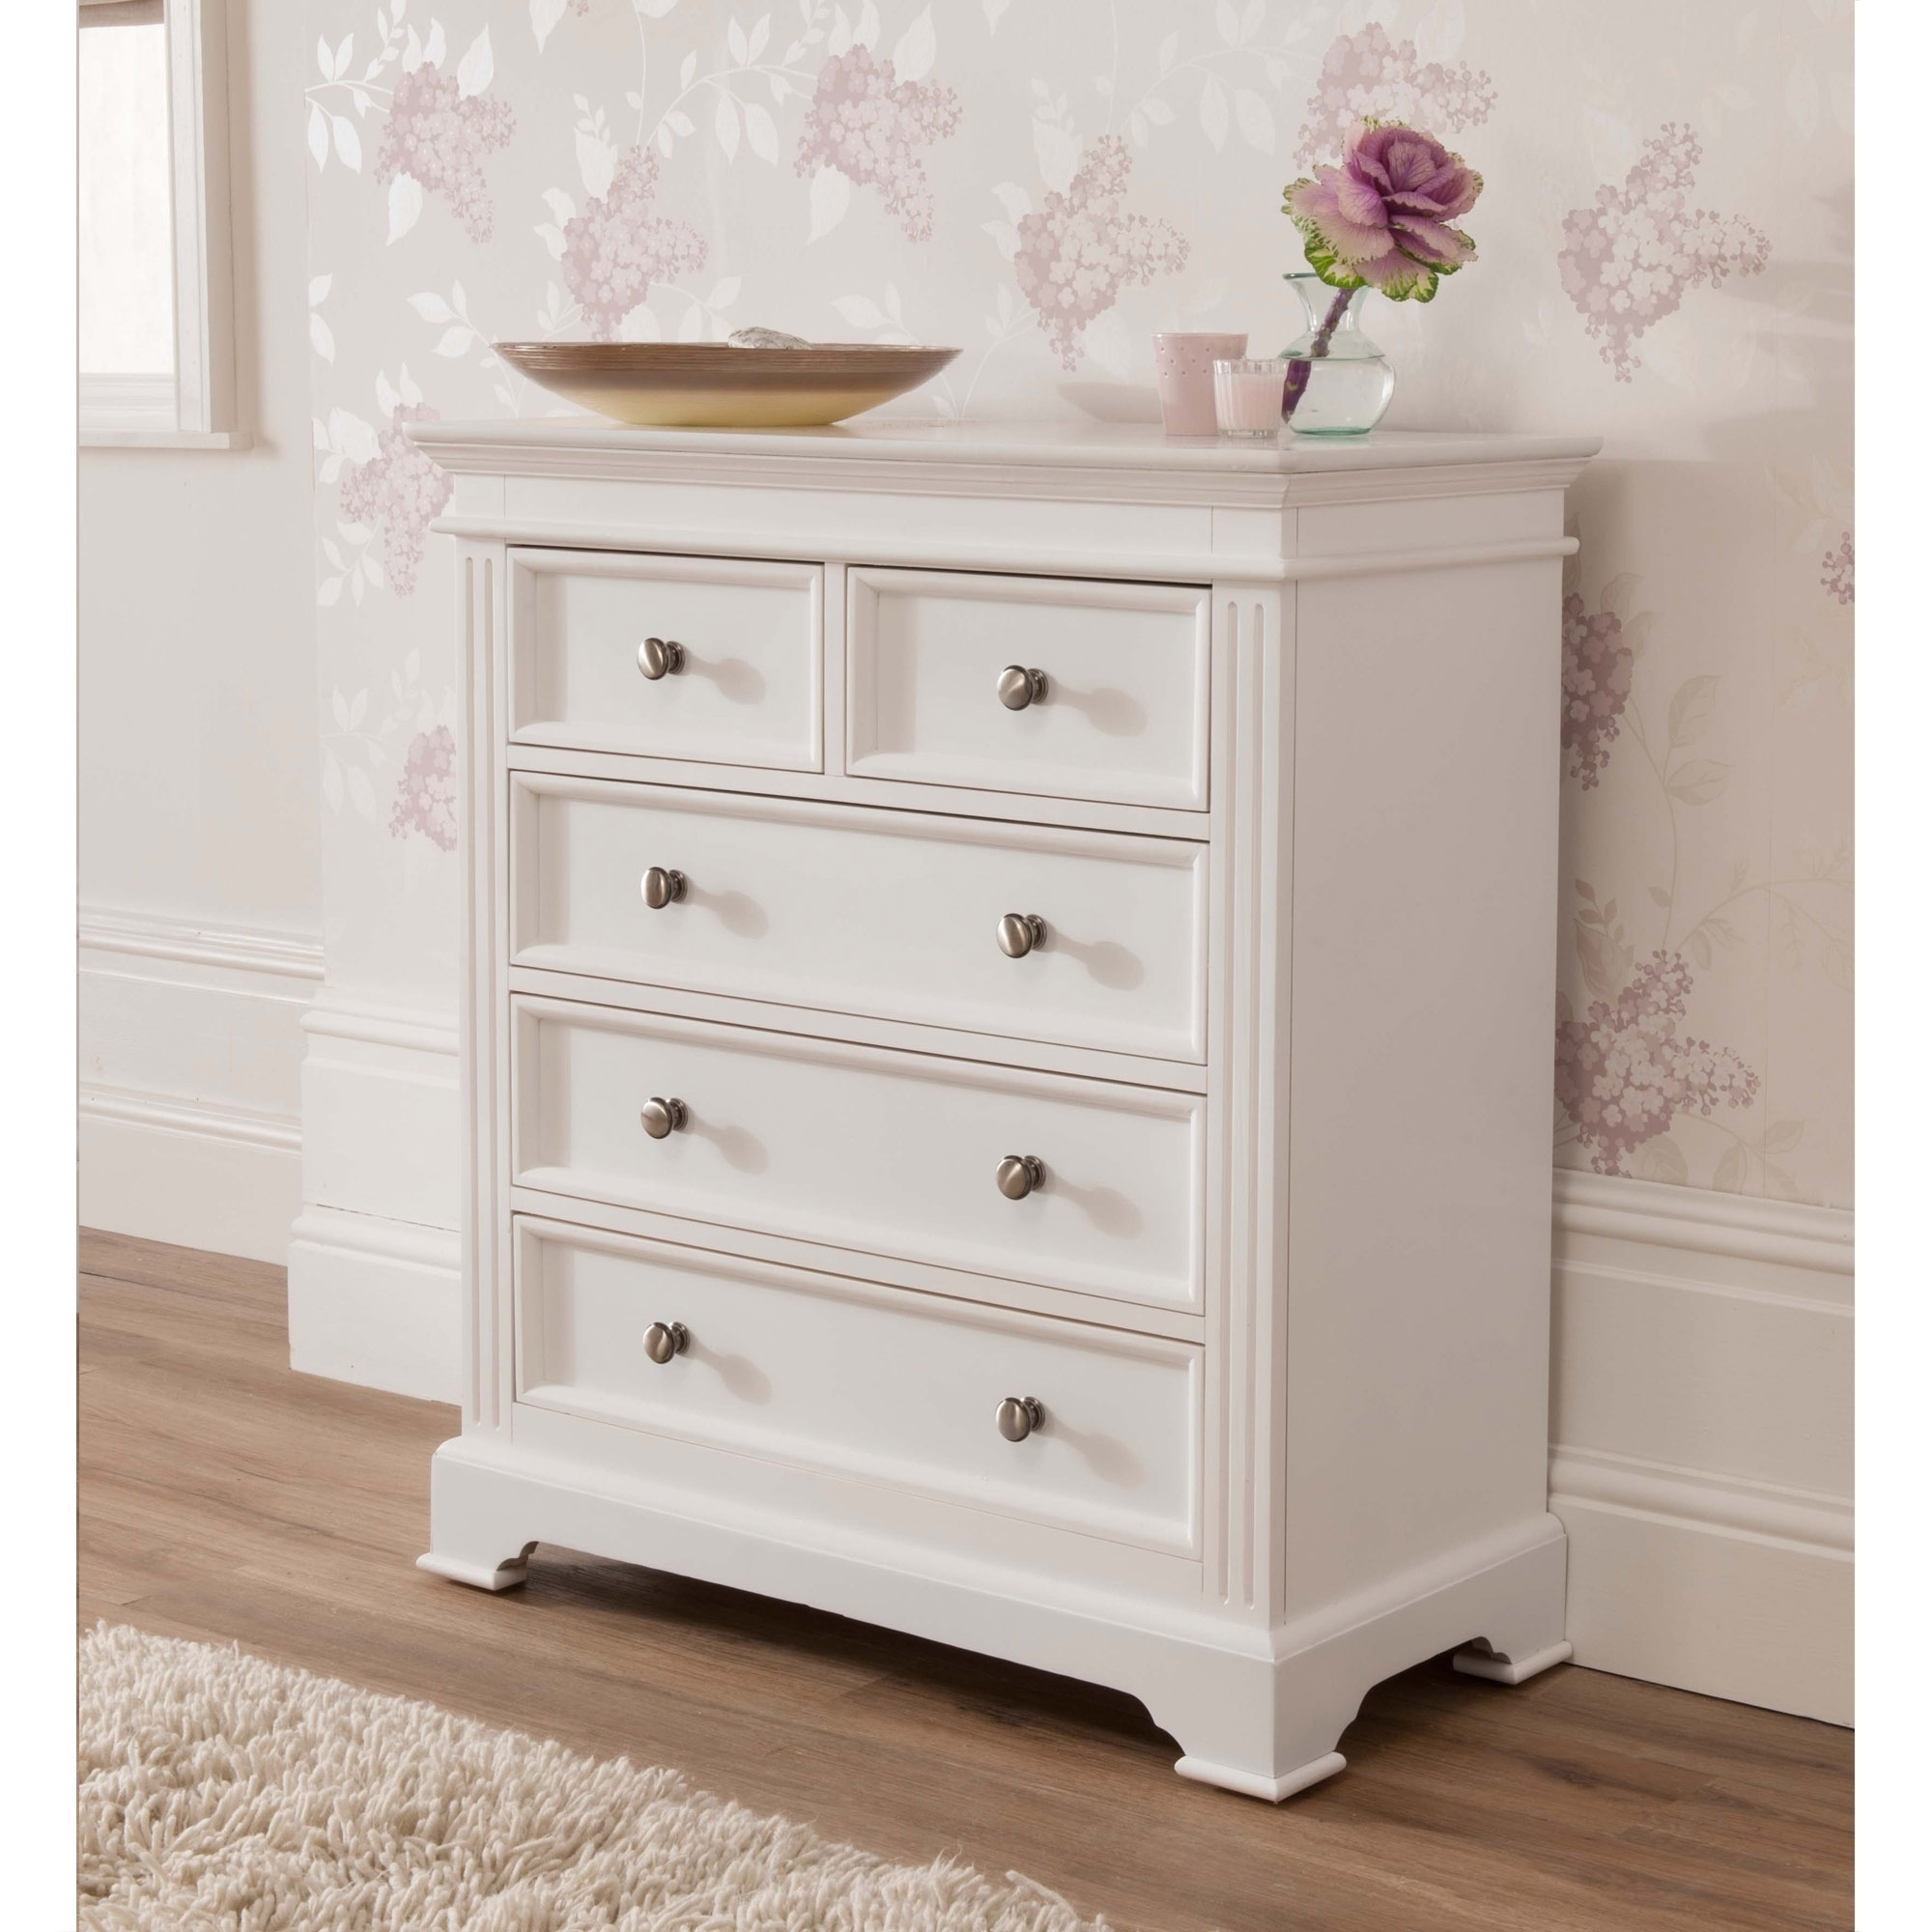 Sophia Shabby Chic Chest Of Drawers Works Marvelous